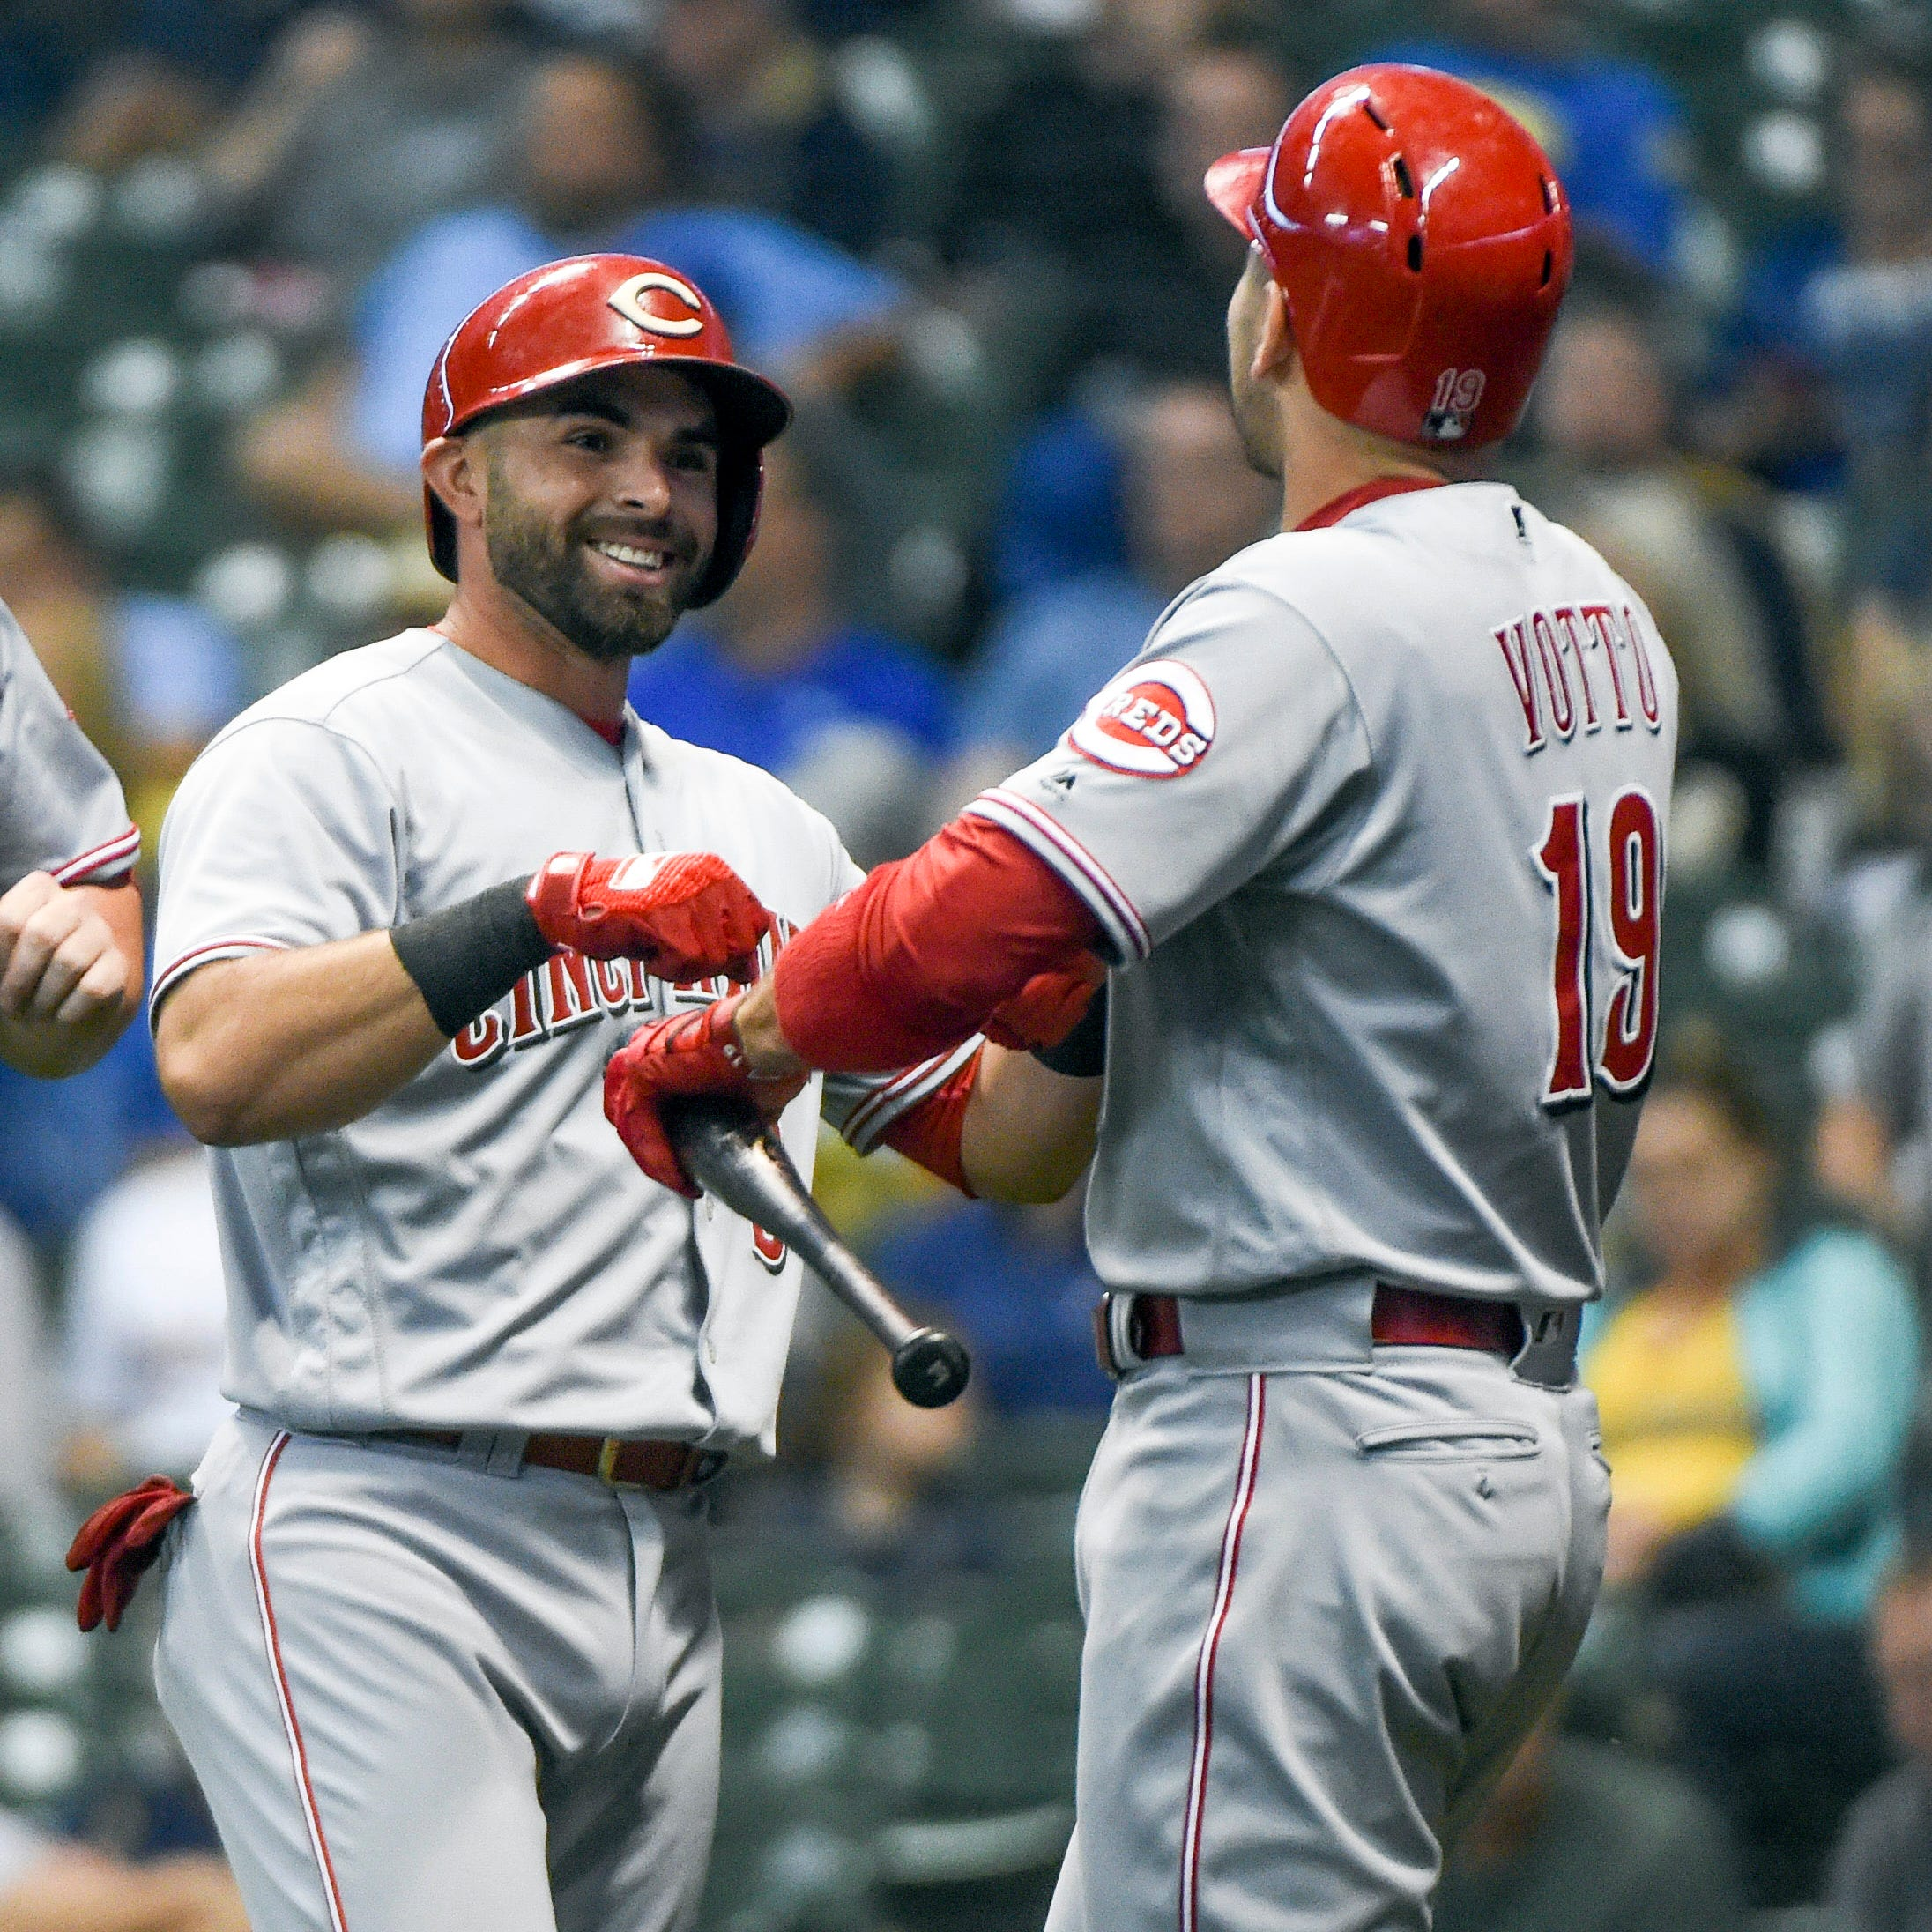 Chicago Cubs manager Joe Maddon on the Cincinnati Reds: 'Watch out next year'